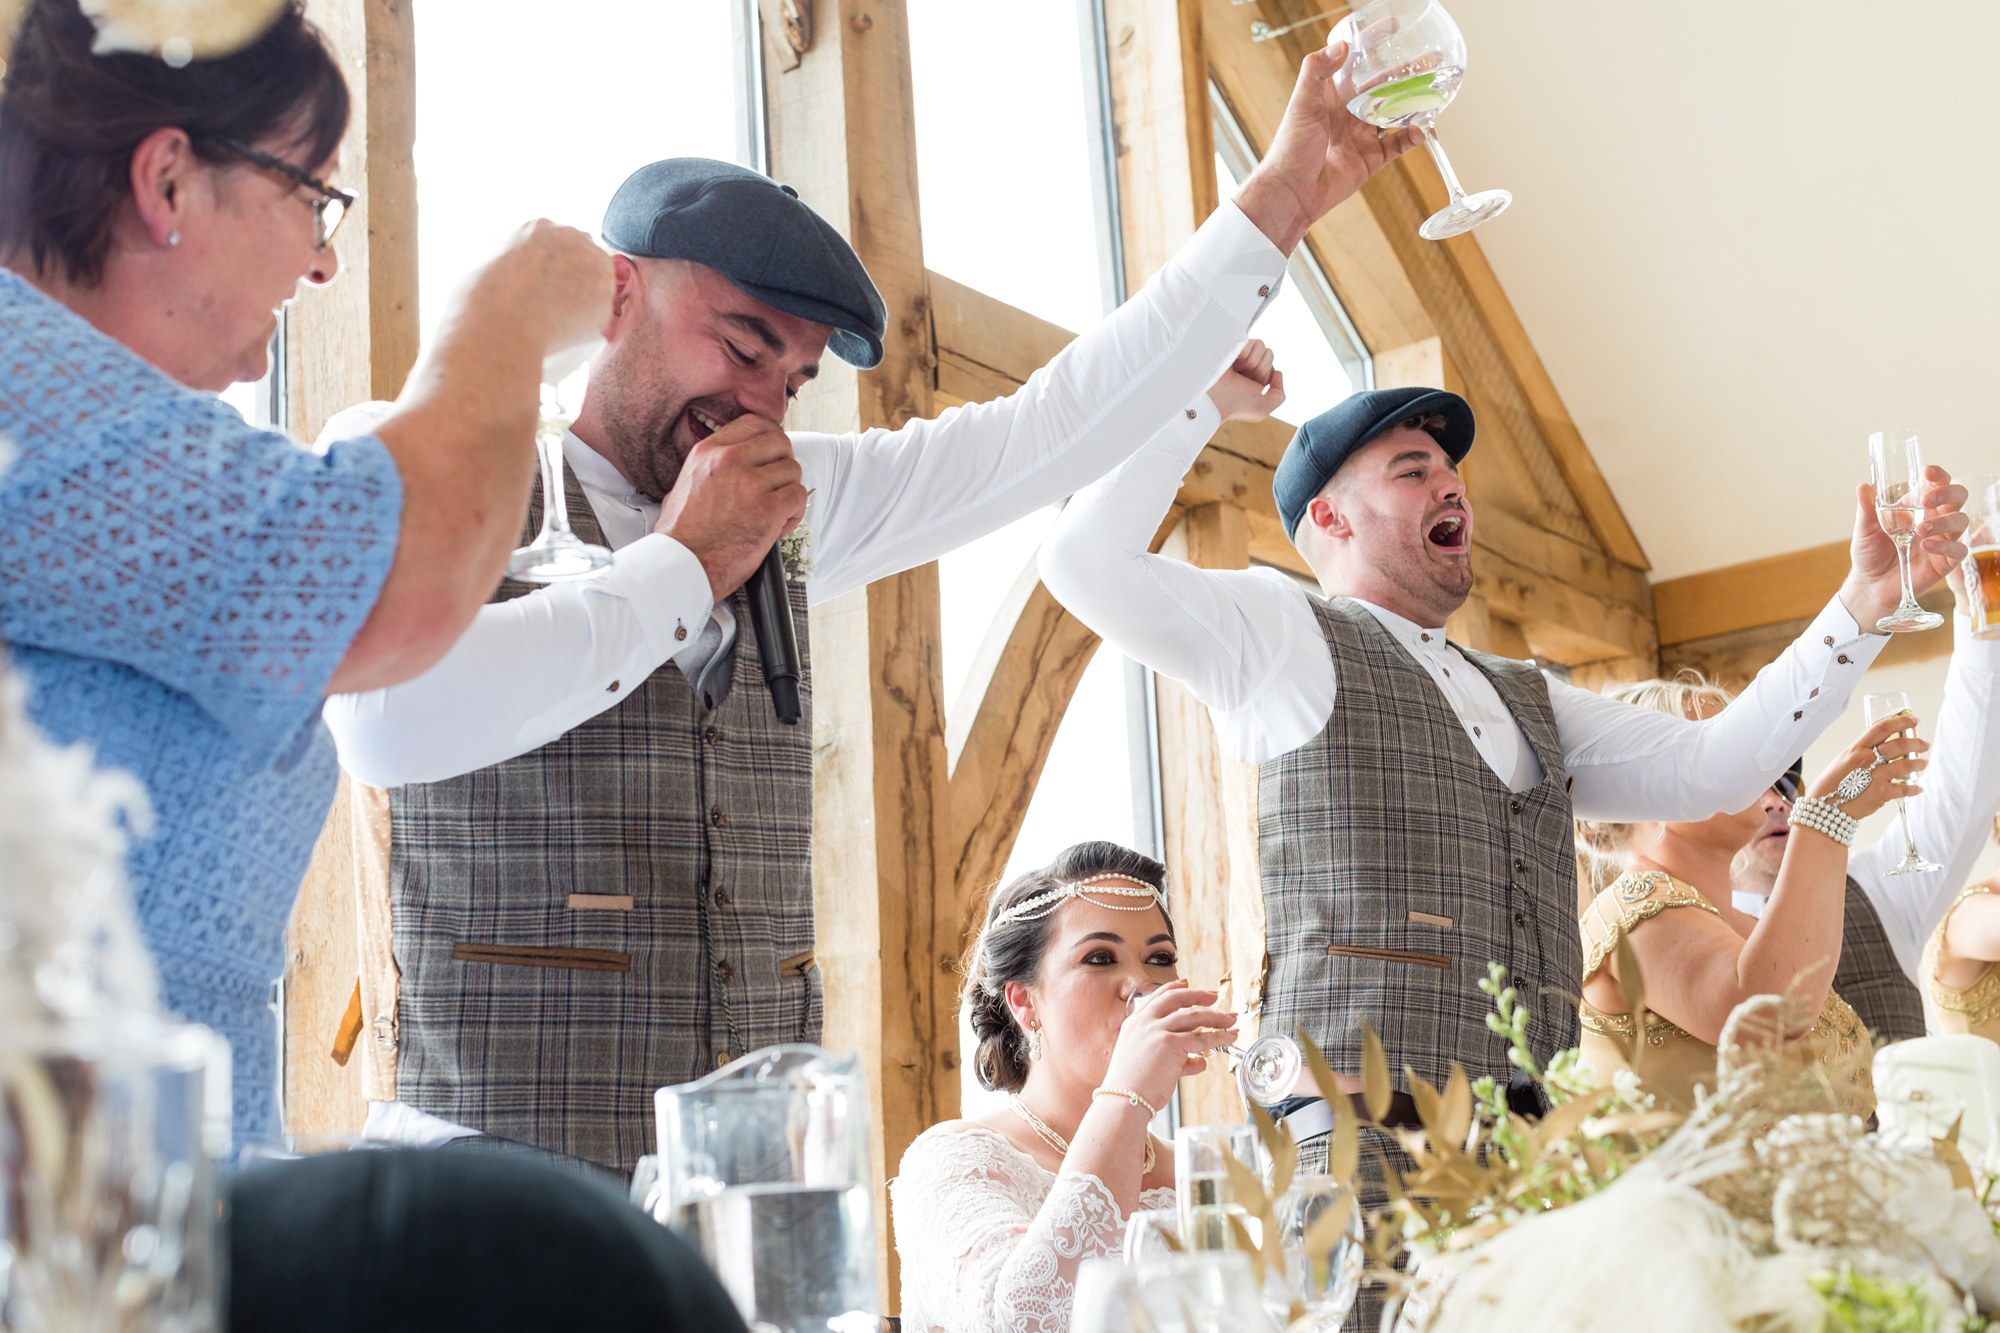 Raising glasses for a toast at Sandburn Hall Wedding.